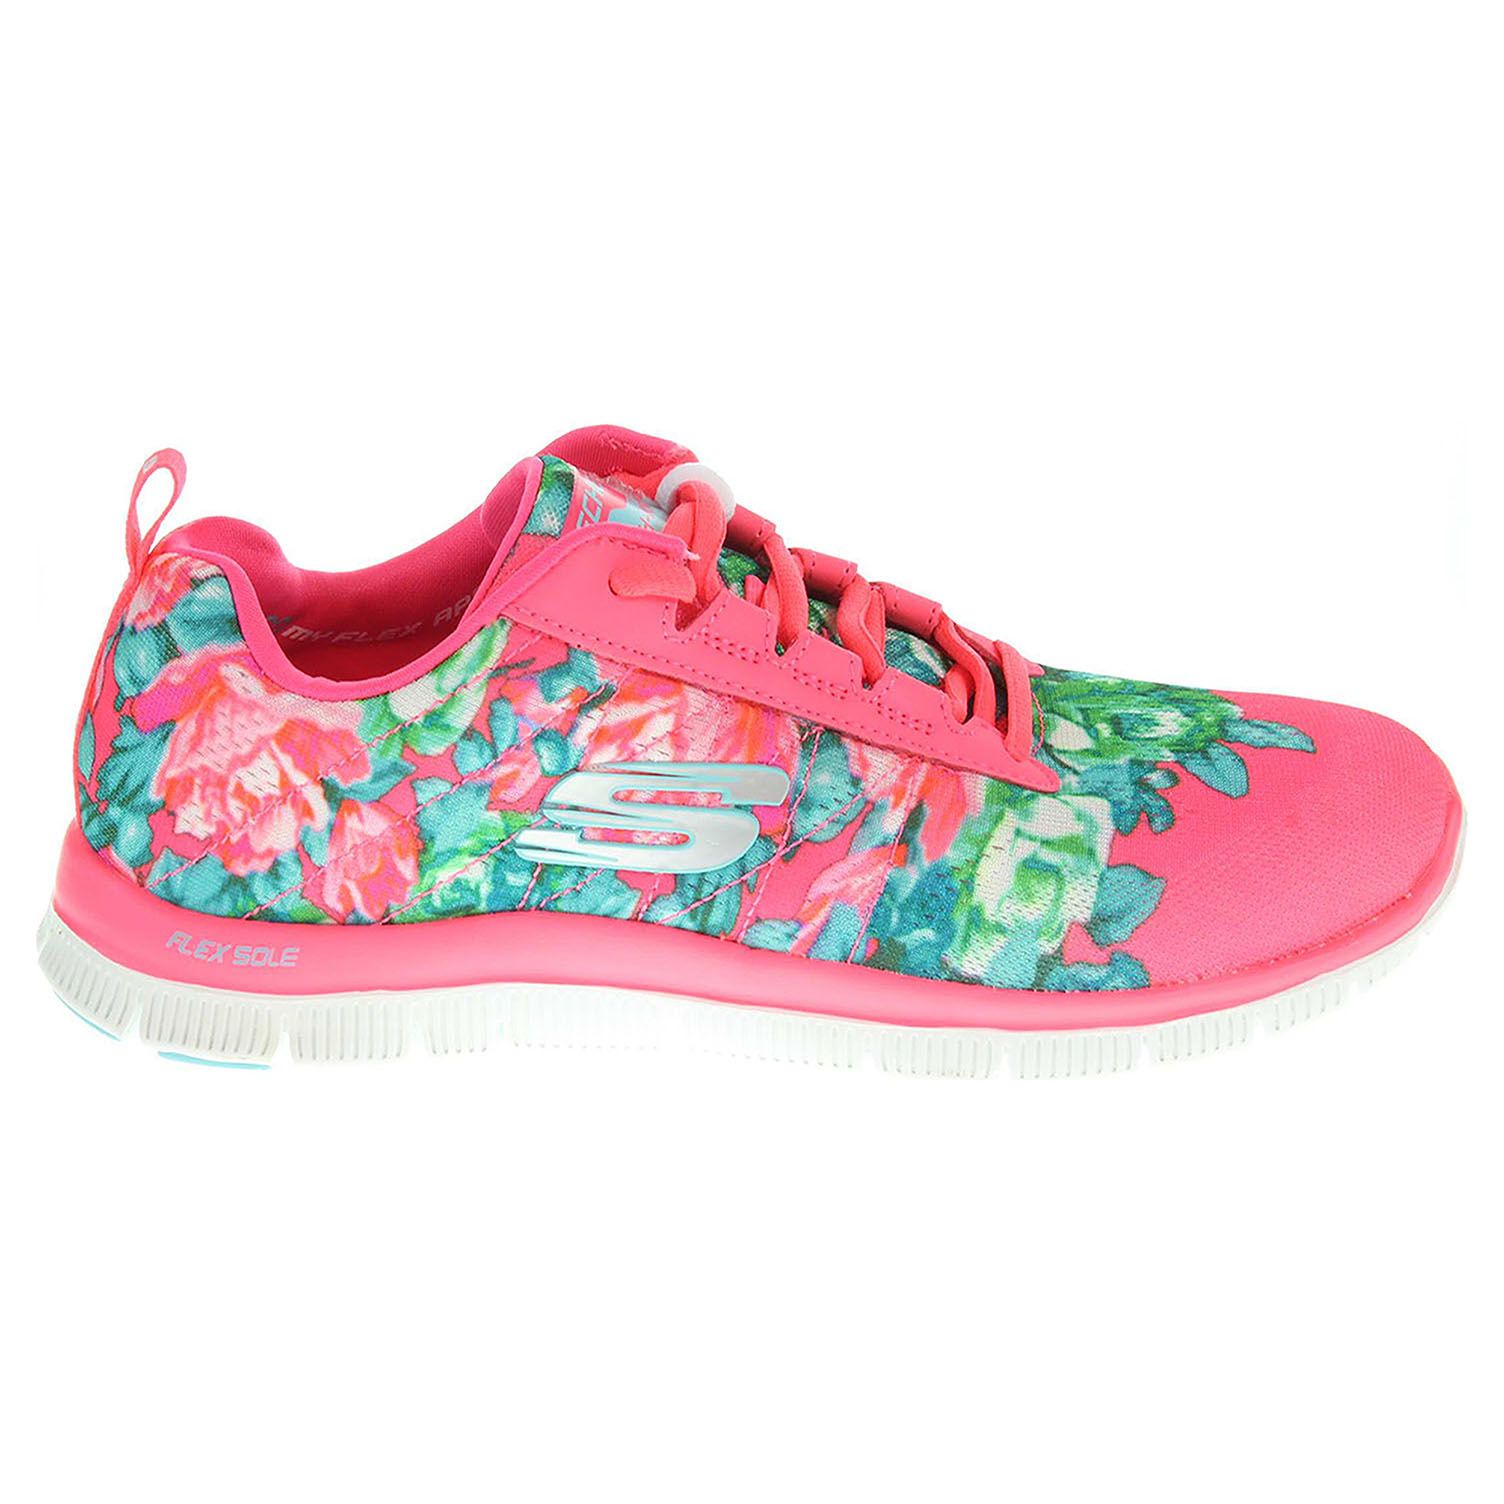 Skechers Wildflowers hot pink-multi 36